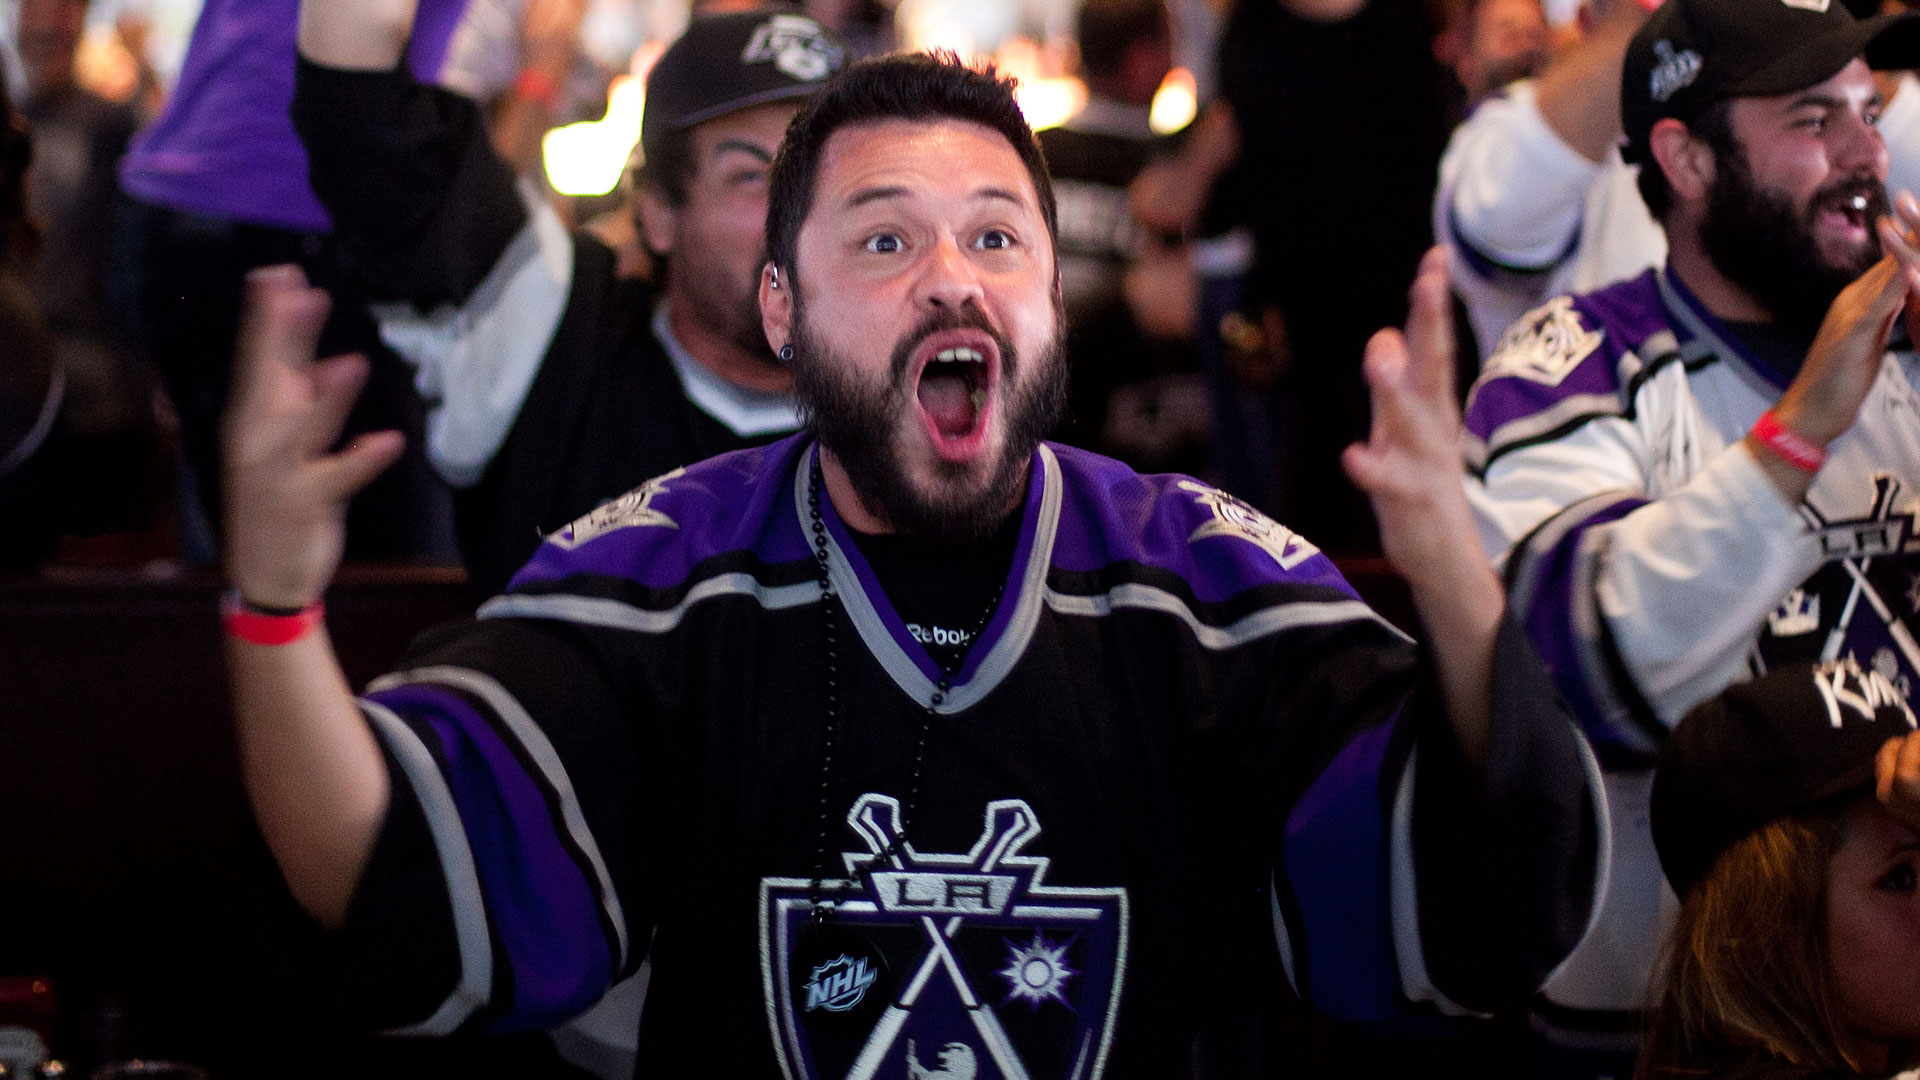 kings-fan-ftr.jpg